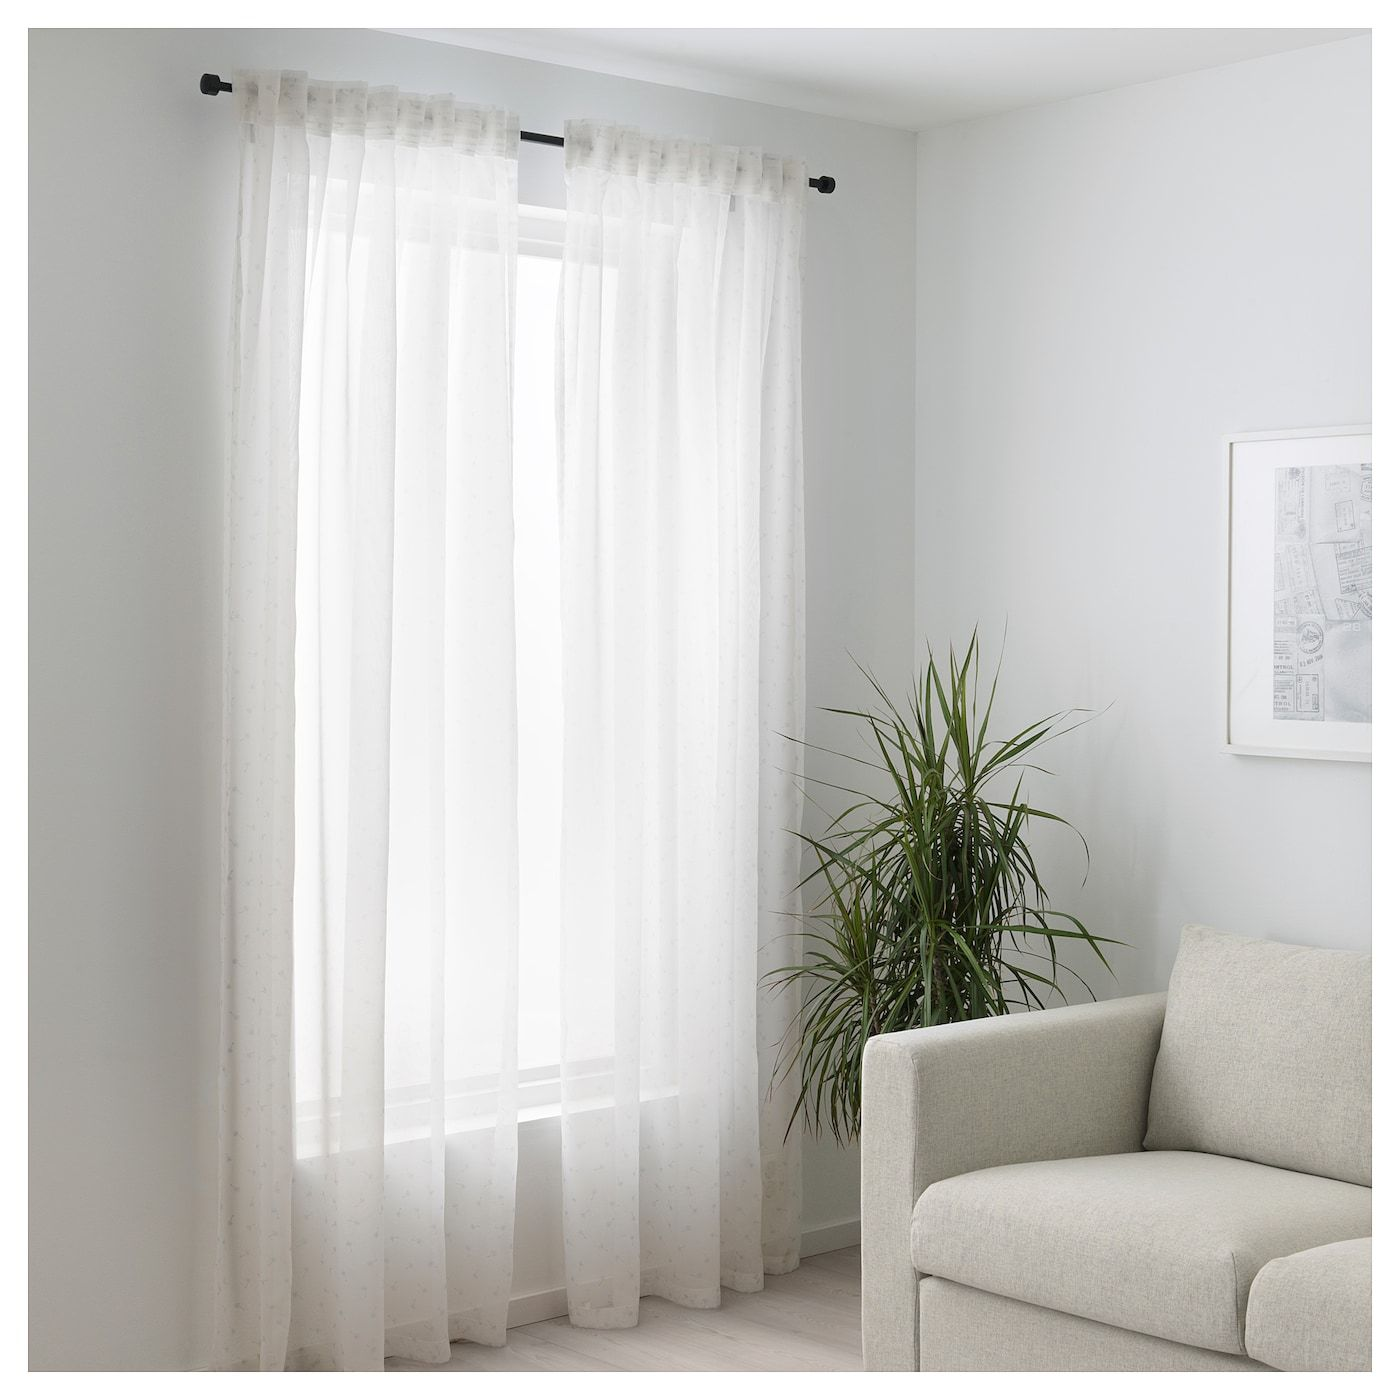 Ikea Us Furniture And Home Furnishings Curtains Living Room Curtains With Blinds White Curtains - Ikea Vorhang Ninni Rund